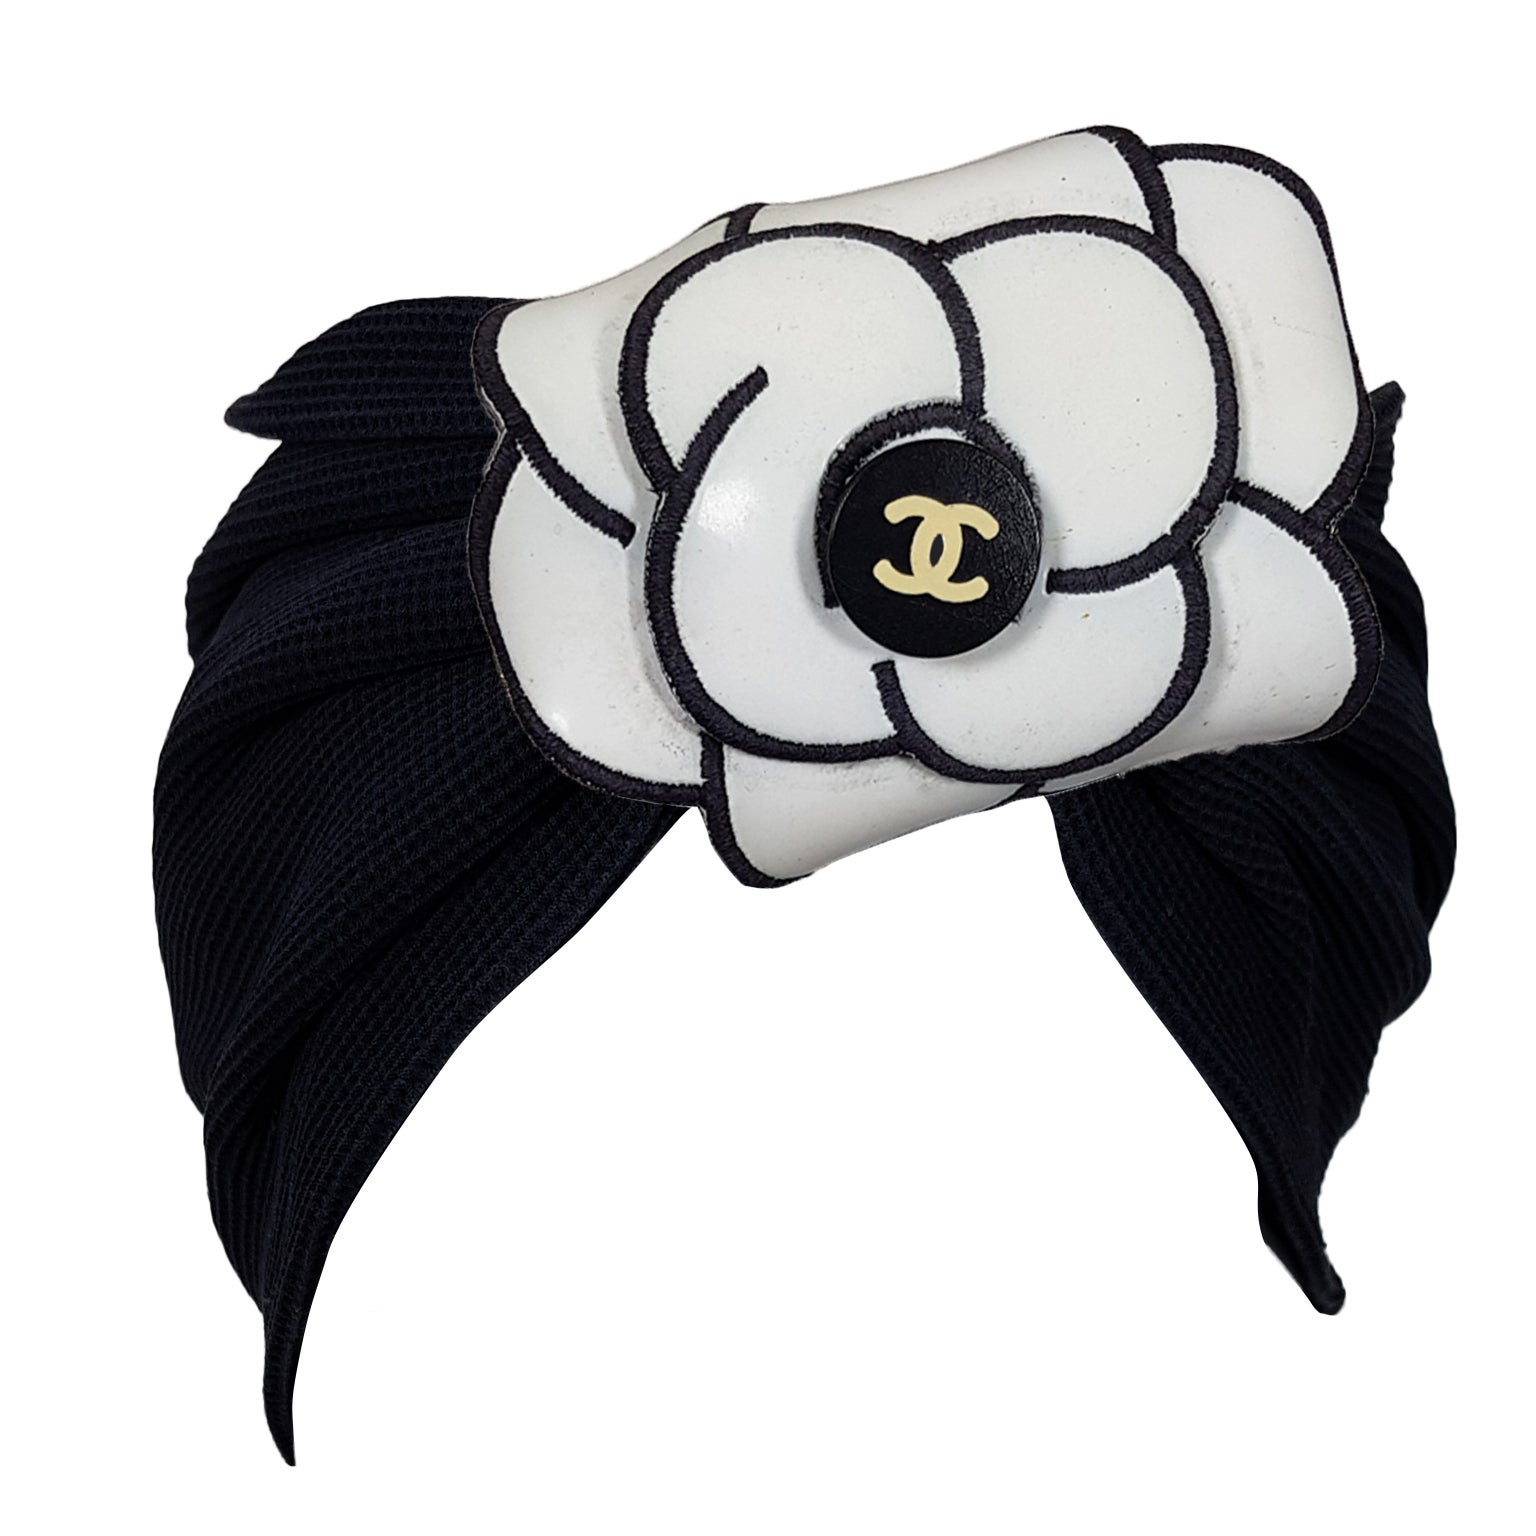 d6905e13 Chanel Black Turban Hair Band White Camellia Campaign SS 1995 For Sale at  1stdibs